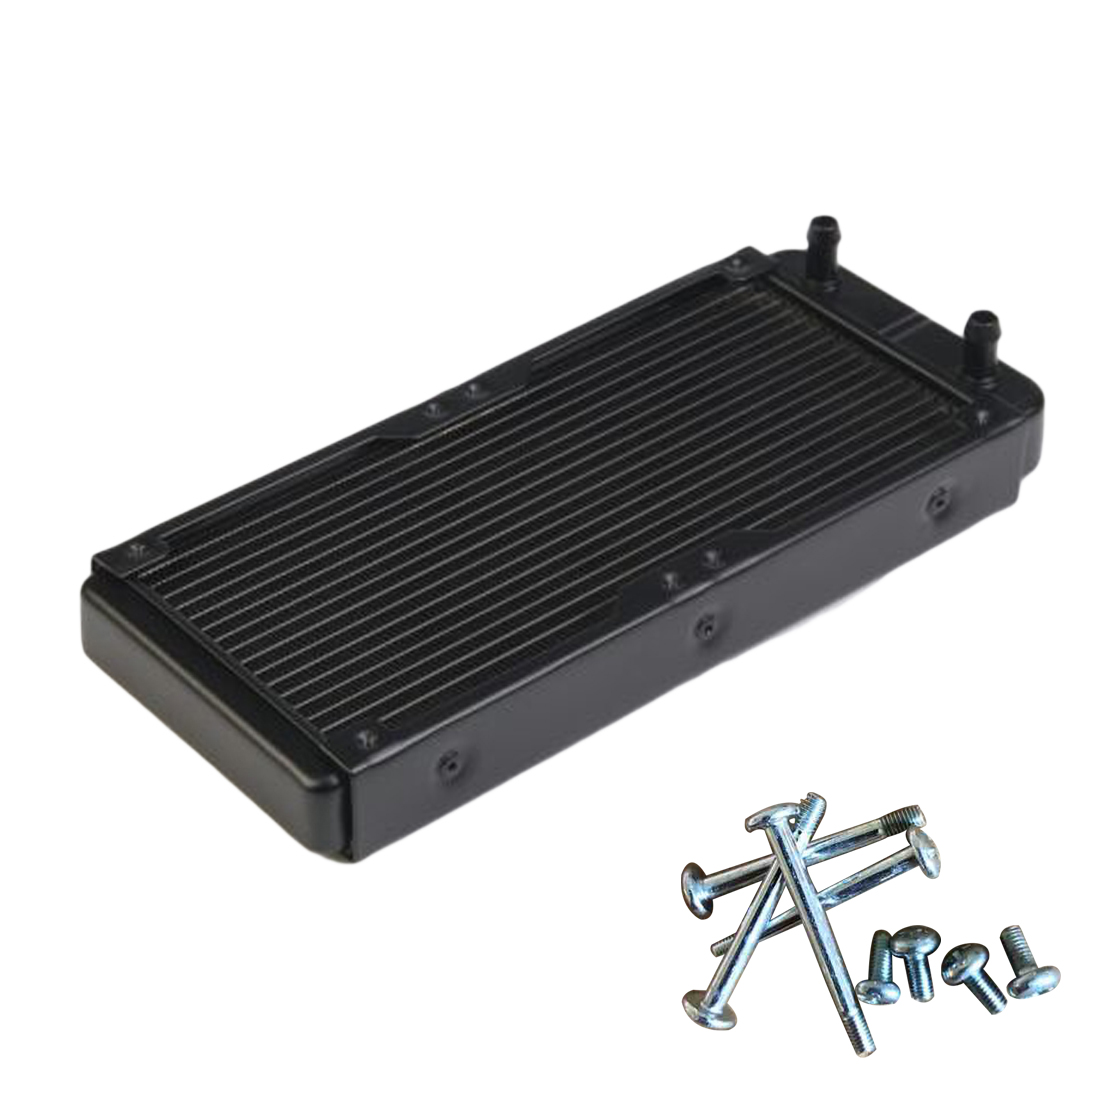 NOYOKERE Hot Sale 240mm G1/4 Aluminum Computer Radiator Water Cooling For CPU LED Heatsink new arrival 1pc 240mm aluminum computer radiator water cooling cooler frequency conversion driver for cpu led heatsink